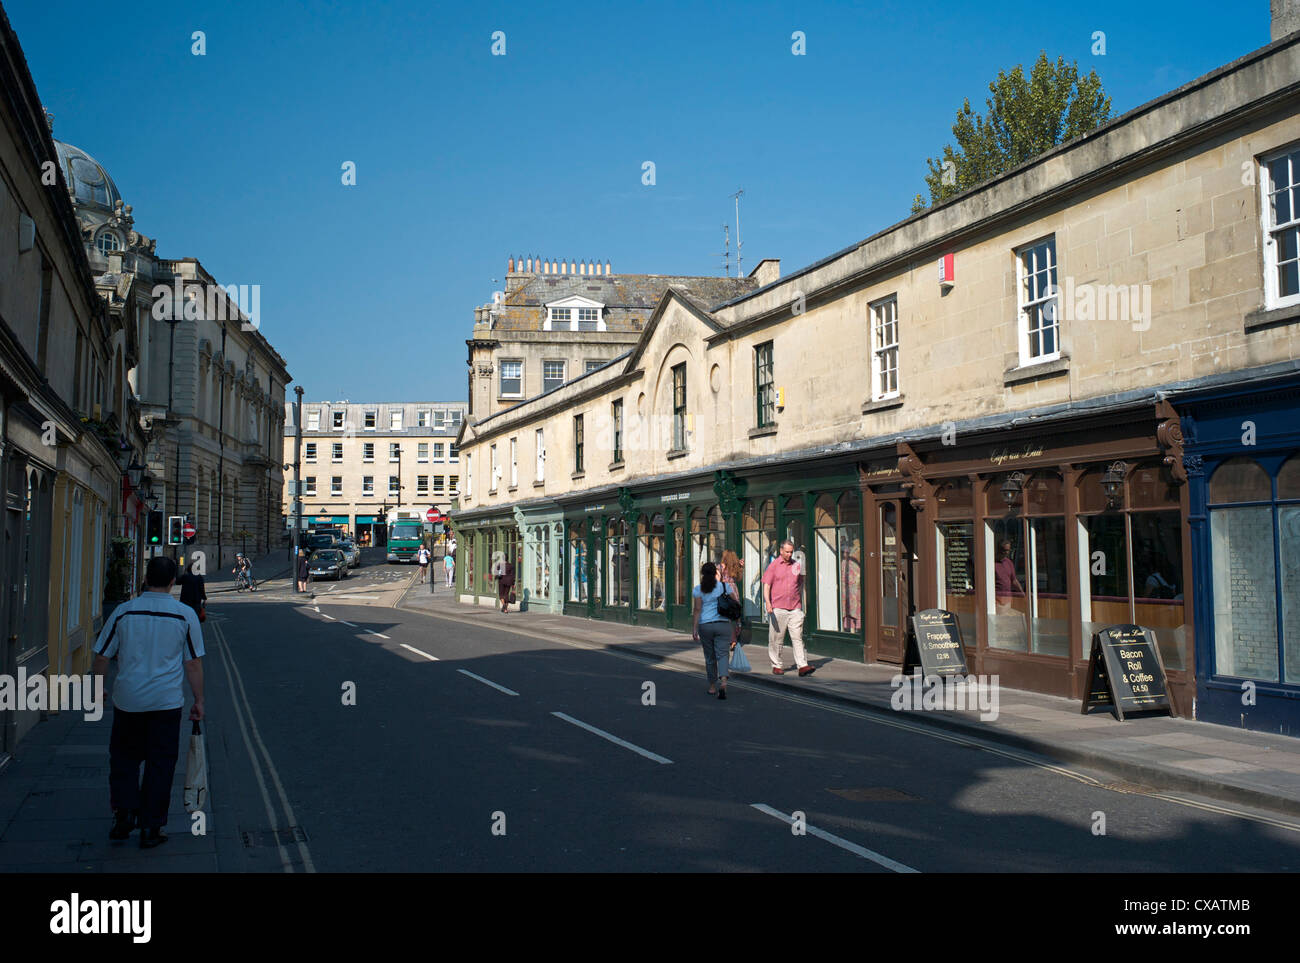 Shops on Pulteney Bridge, Bath, Avon, England, United Kingdom, Europe - Stock Image